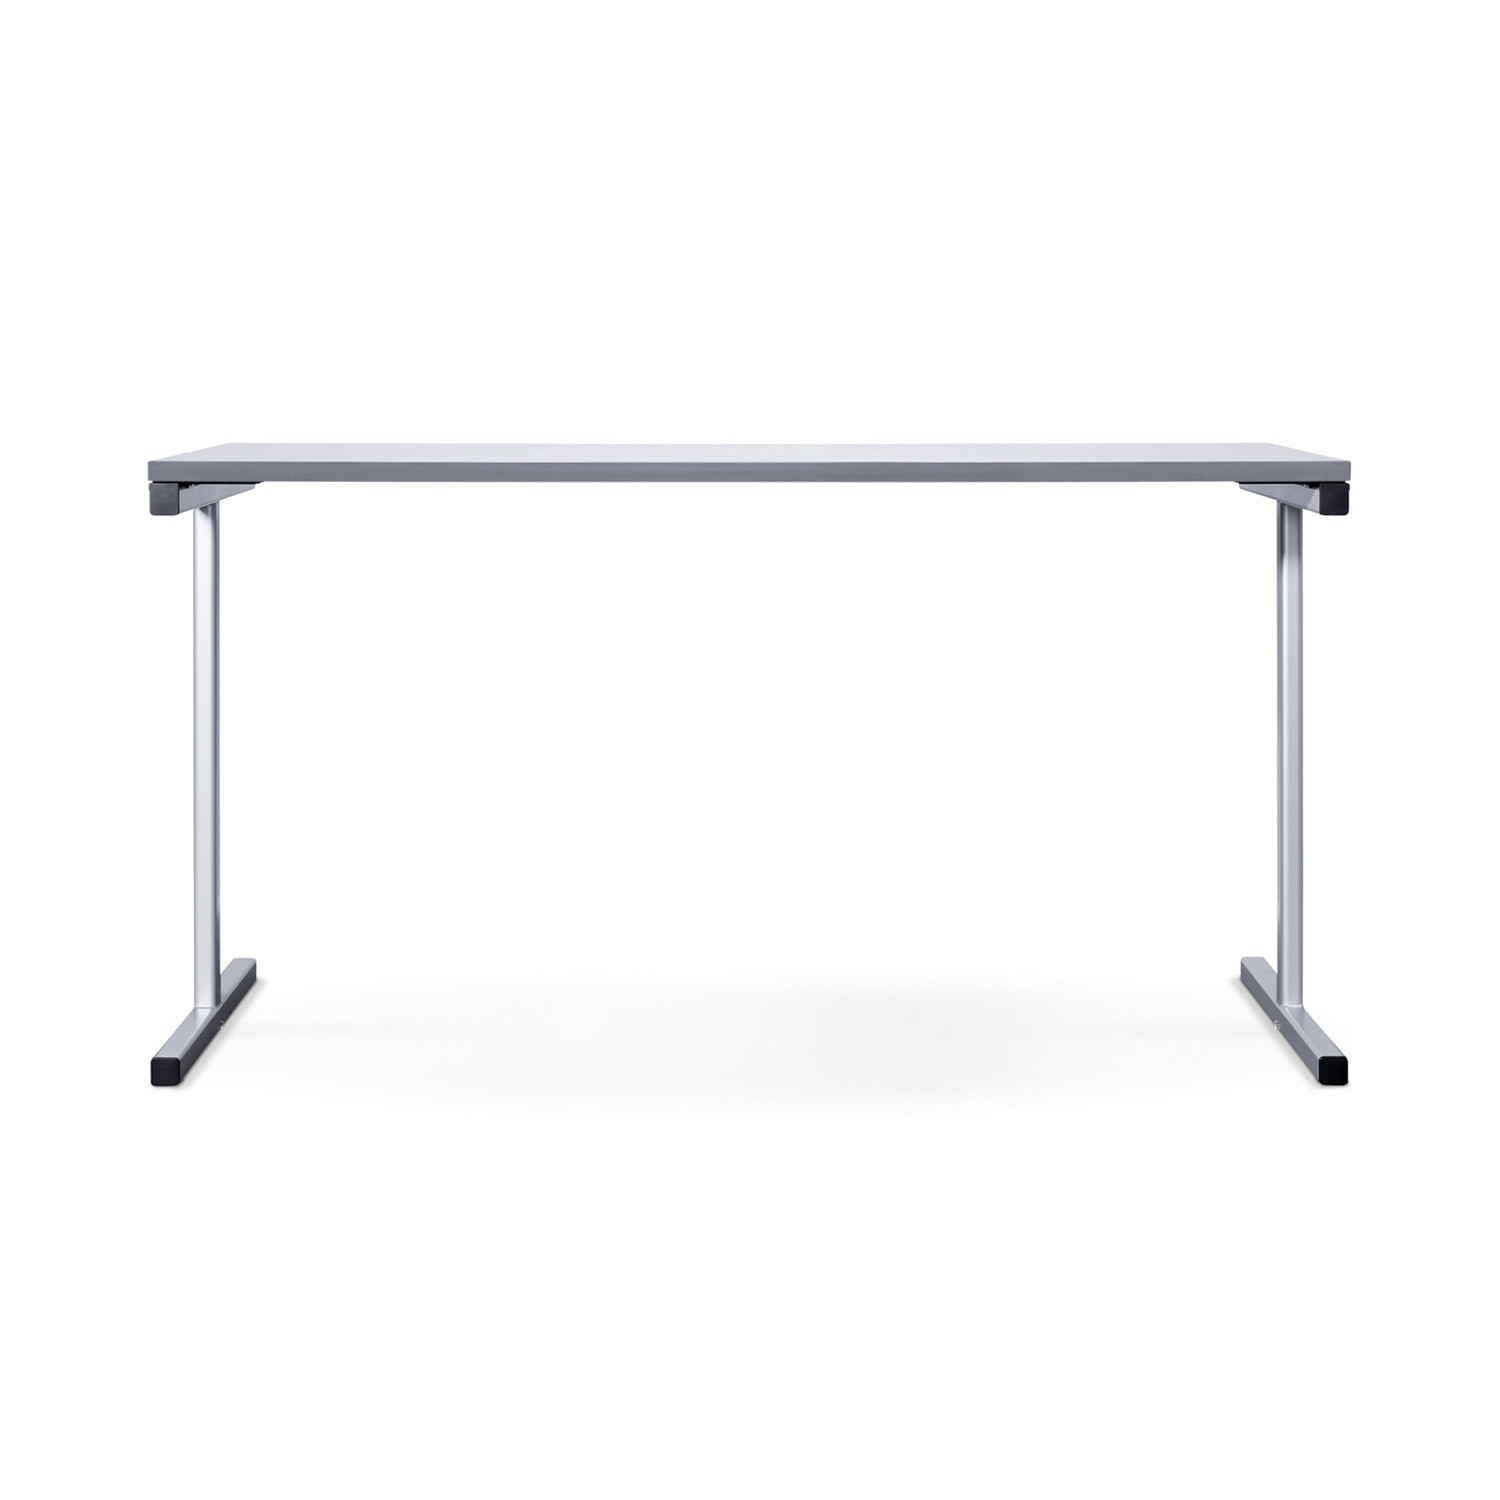 N.F.T. Folding Table by Greutmann Bolzern